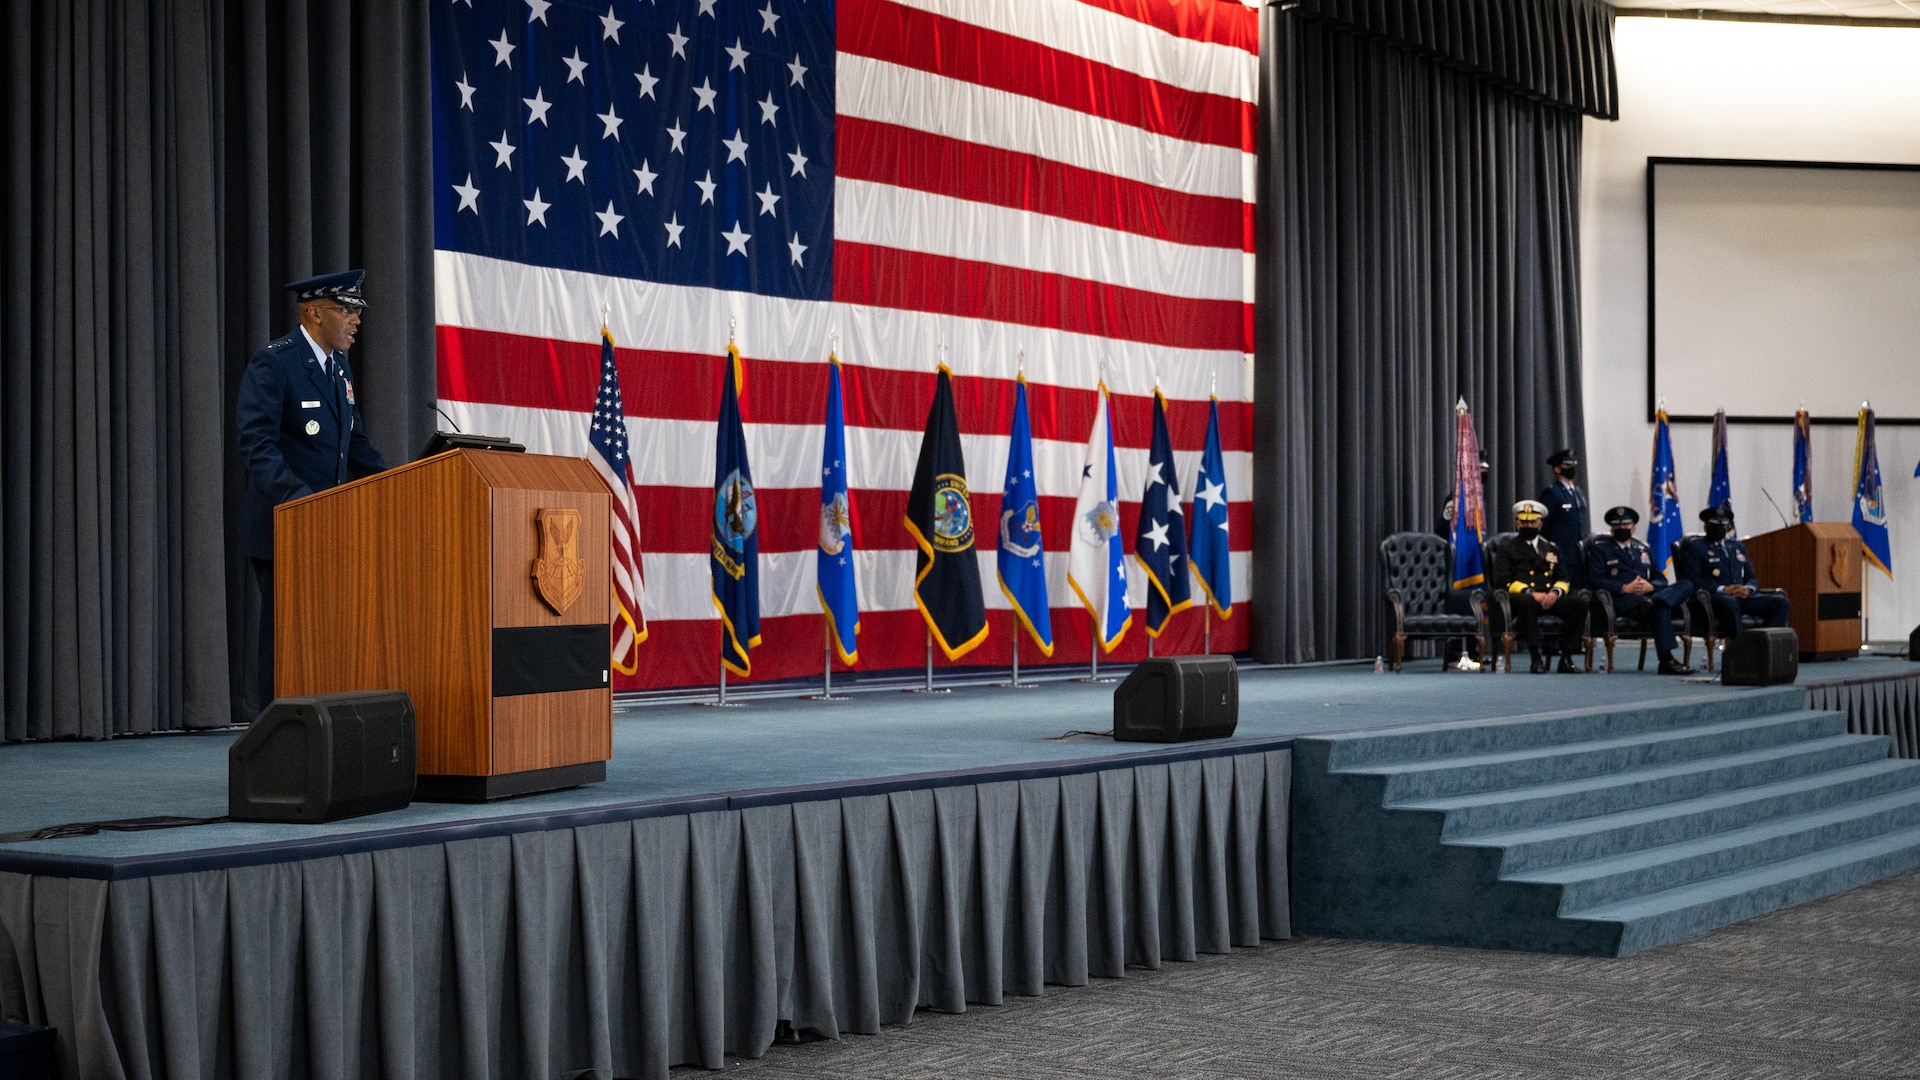 Air Force Chief of Staff Gen. CQ Brown, Jr., makes remarks during the Air Force Global Strike Command change of command ceremony at Barksdale Air Force Base, Louisiana, Aug. 27, 2021. The ceremony is a military tradition that represents a formal transfer of authority and responsibility for a unit from one commanding or flag officer to another. (U.S. Air Force photo by Senior Airman Jacob B. Wrightsman